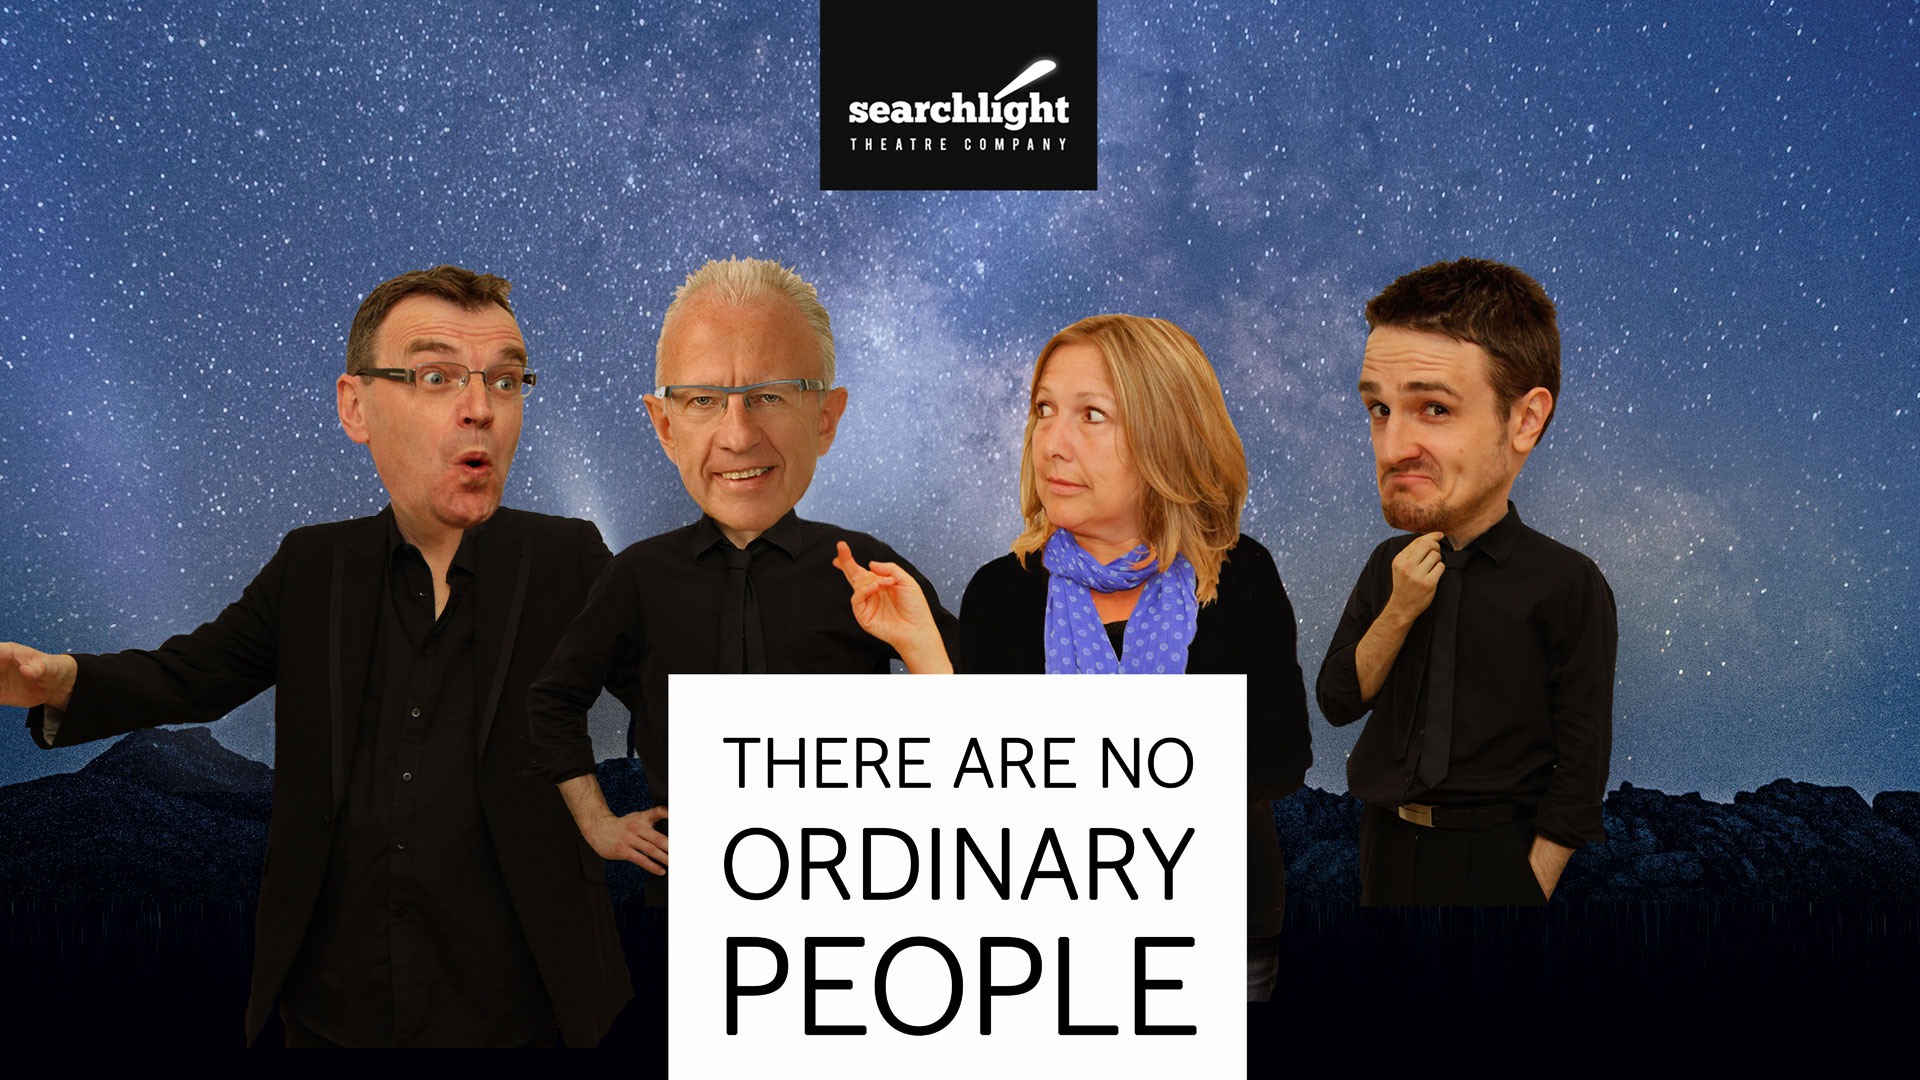 THERE ARE NO ORDINARY PEOPLE | An Evening with Jeff Lucas & Searchlight Theatre Company - Story Telling, Theatre, Music and Mirth...